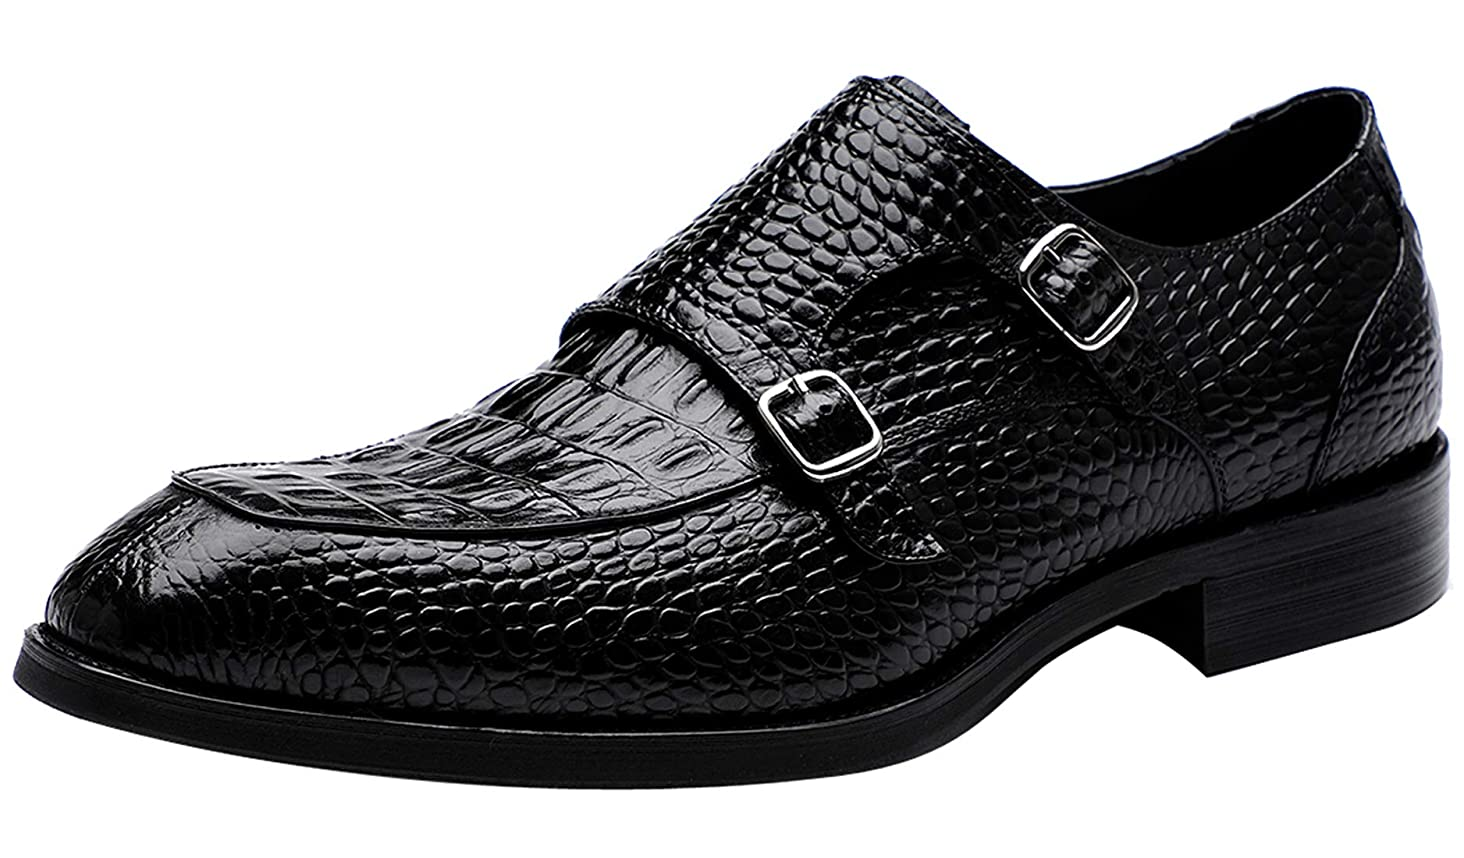 Mens Double Monk Strap Slip on Loafer Leather Oxford Formal Business Casual Comfortable Dress Shoes for Men